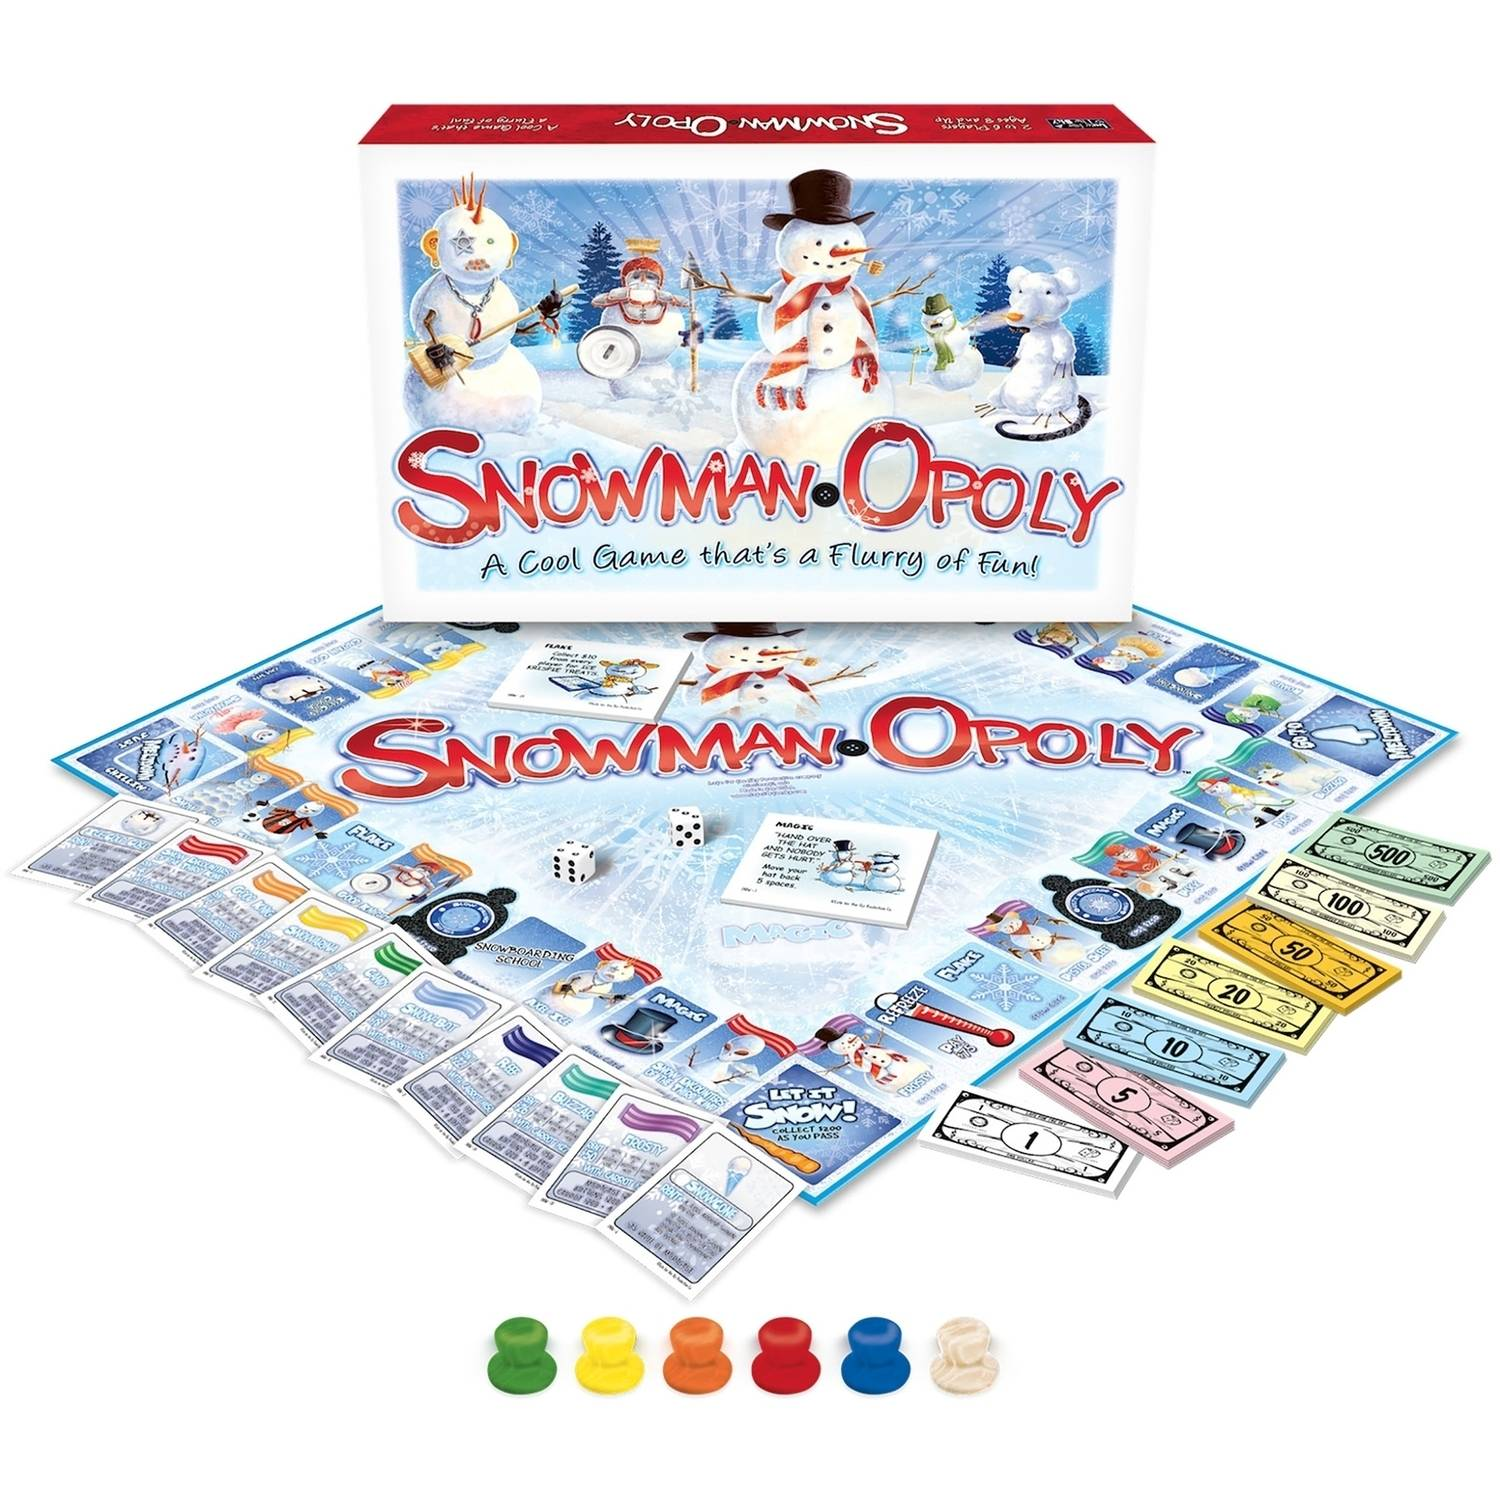 Late for the Sky Snowman-opoly Game